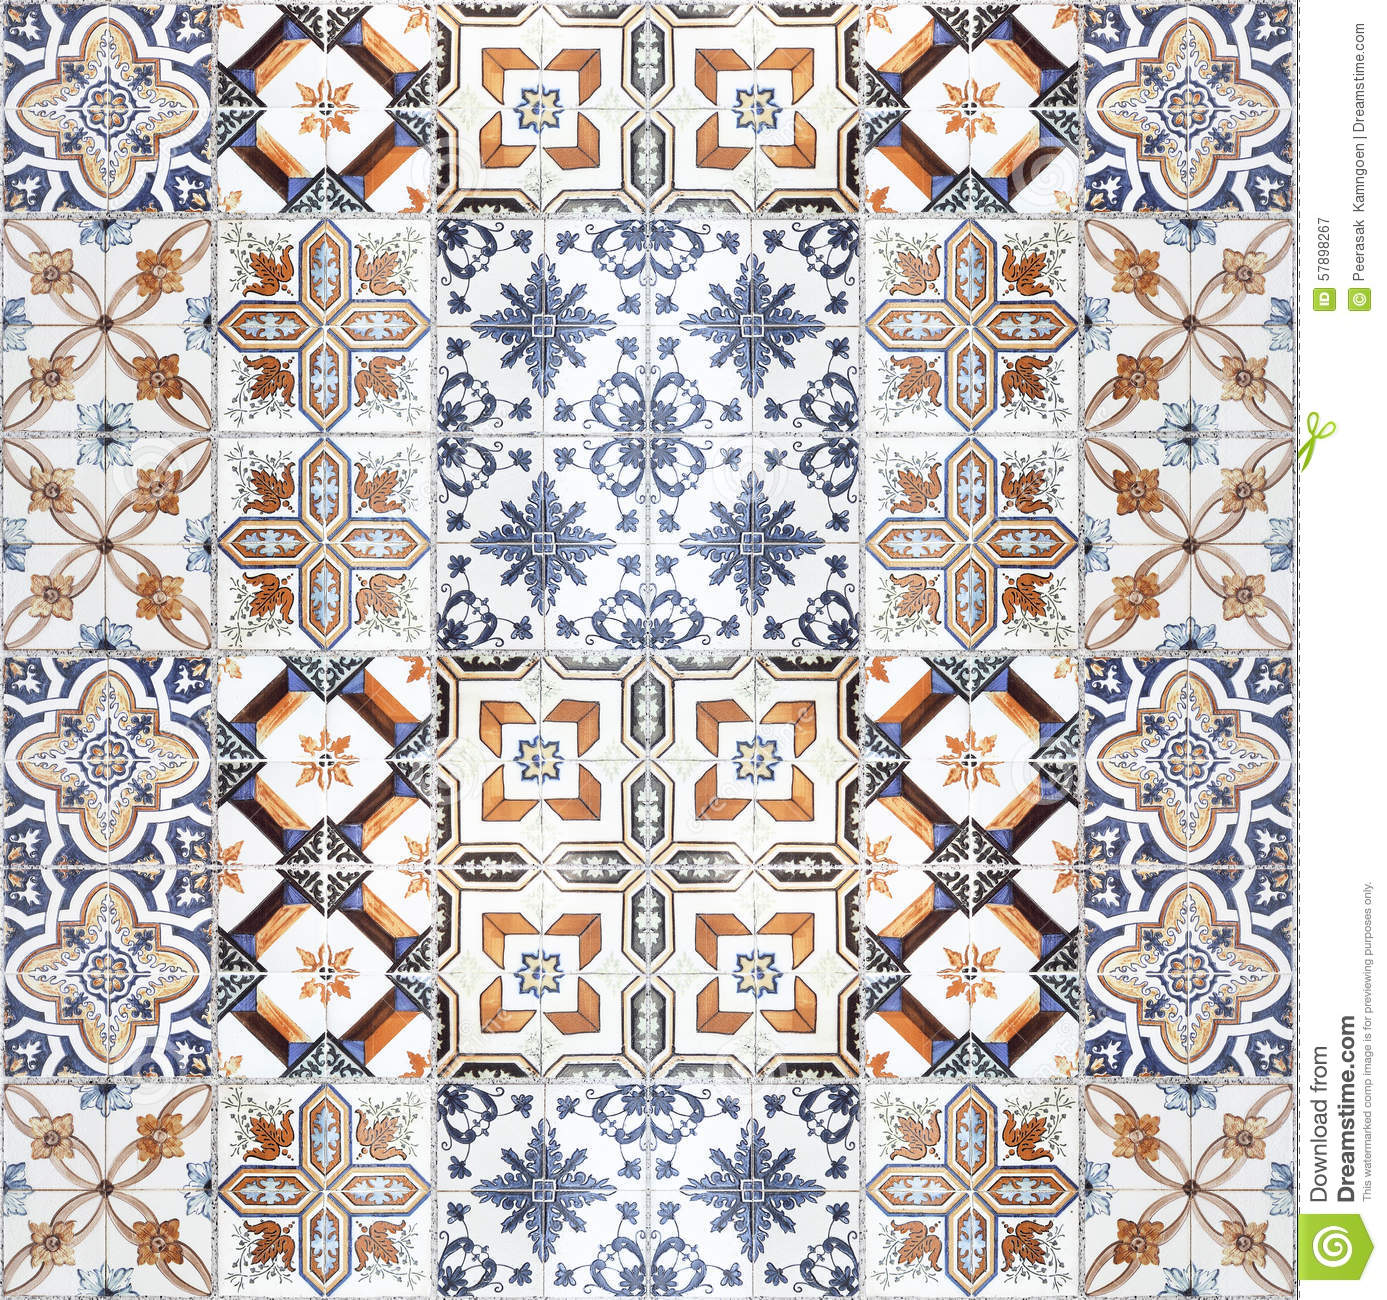 how to find old ceramic tiles